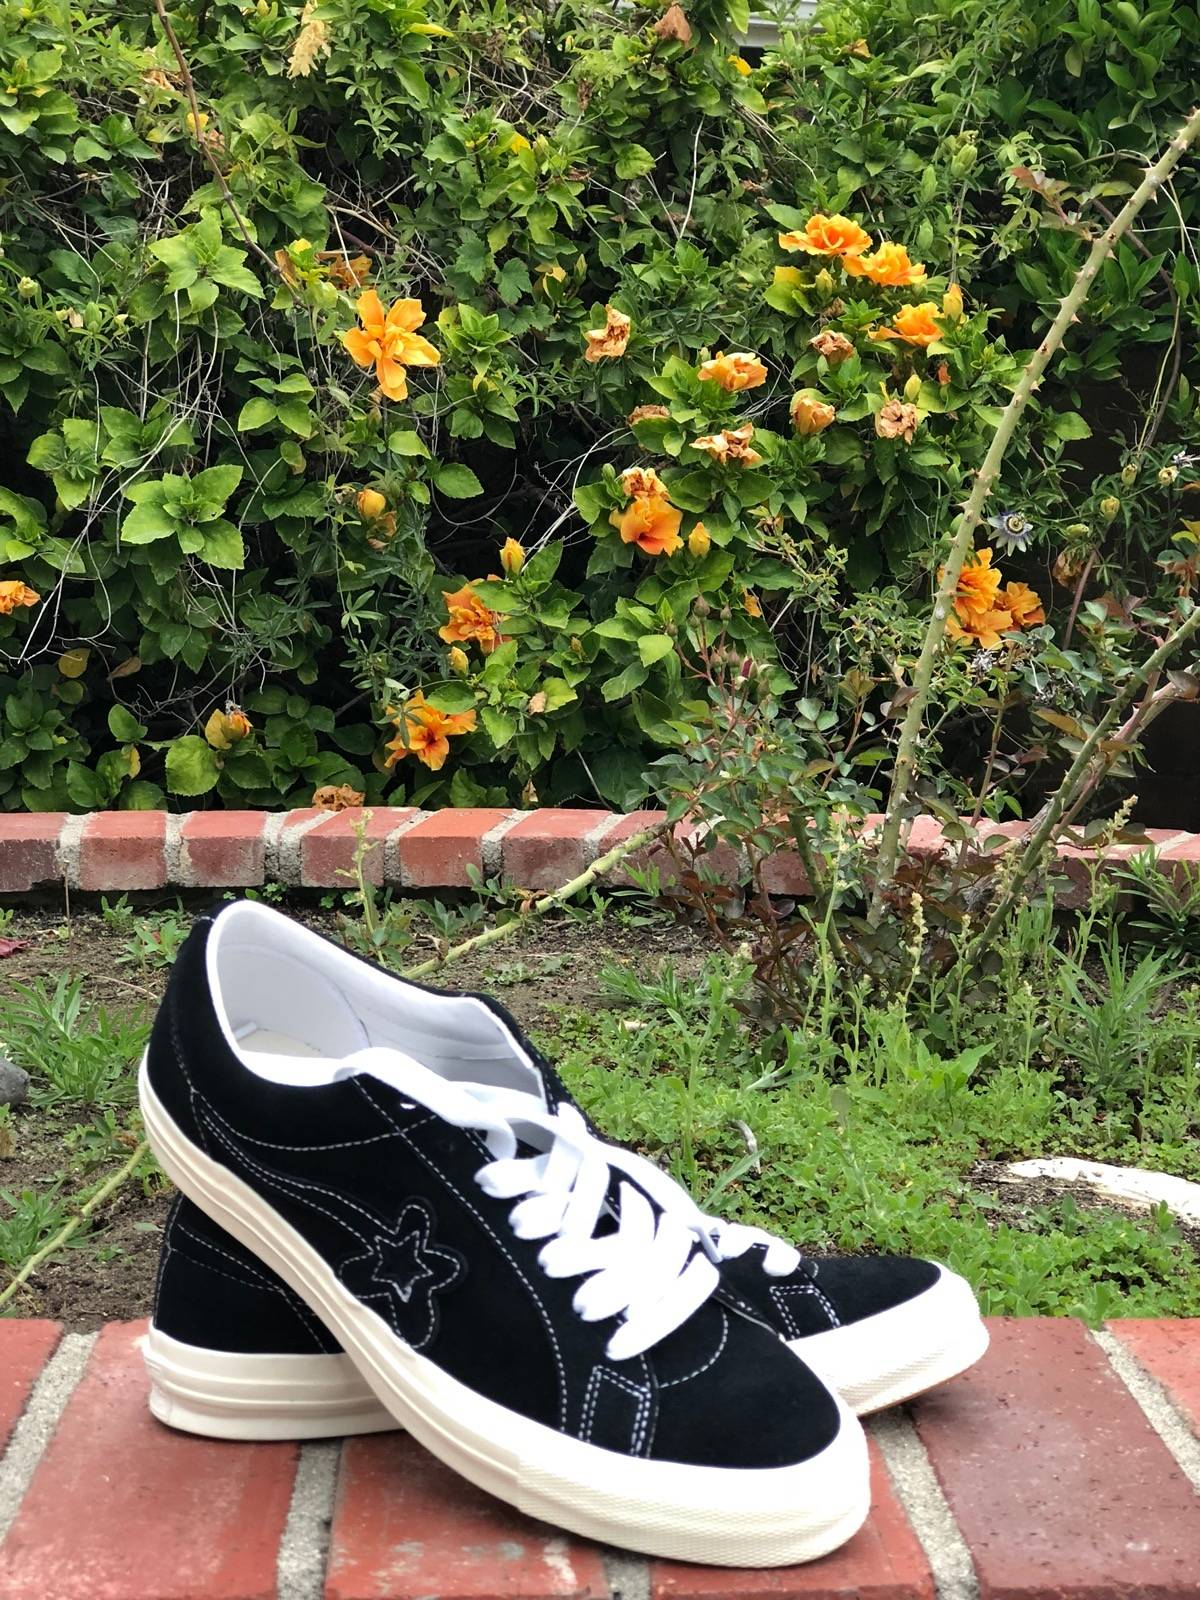 """1ed795931257 Converse Golf le Fleur X Converse One Star """"Mono Black """" Size 10.5 -  Low-Top Sneakers for Sale - Grailed"""